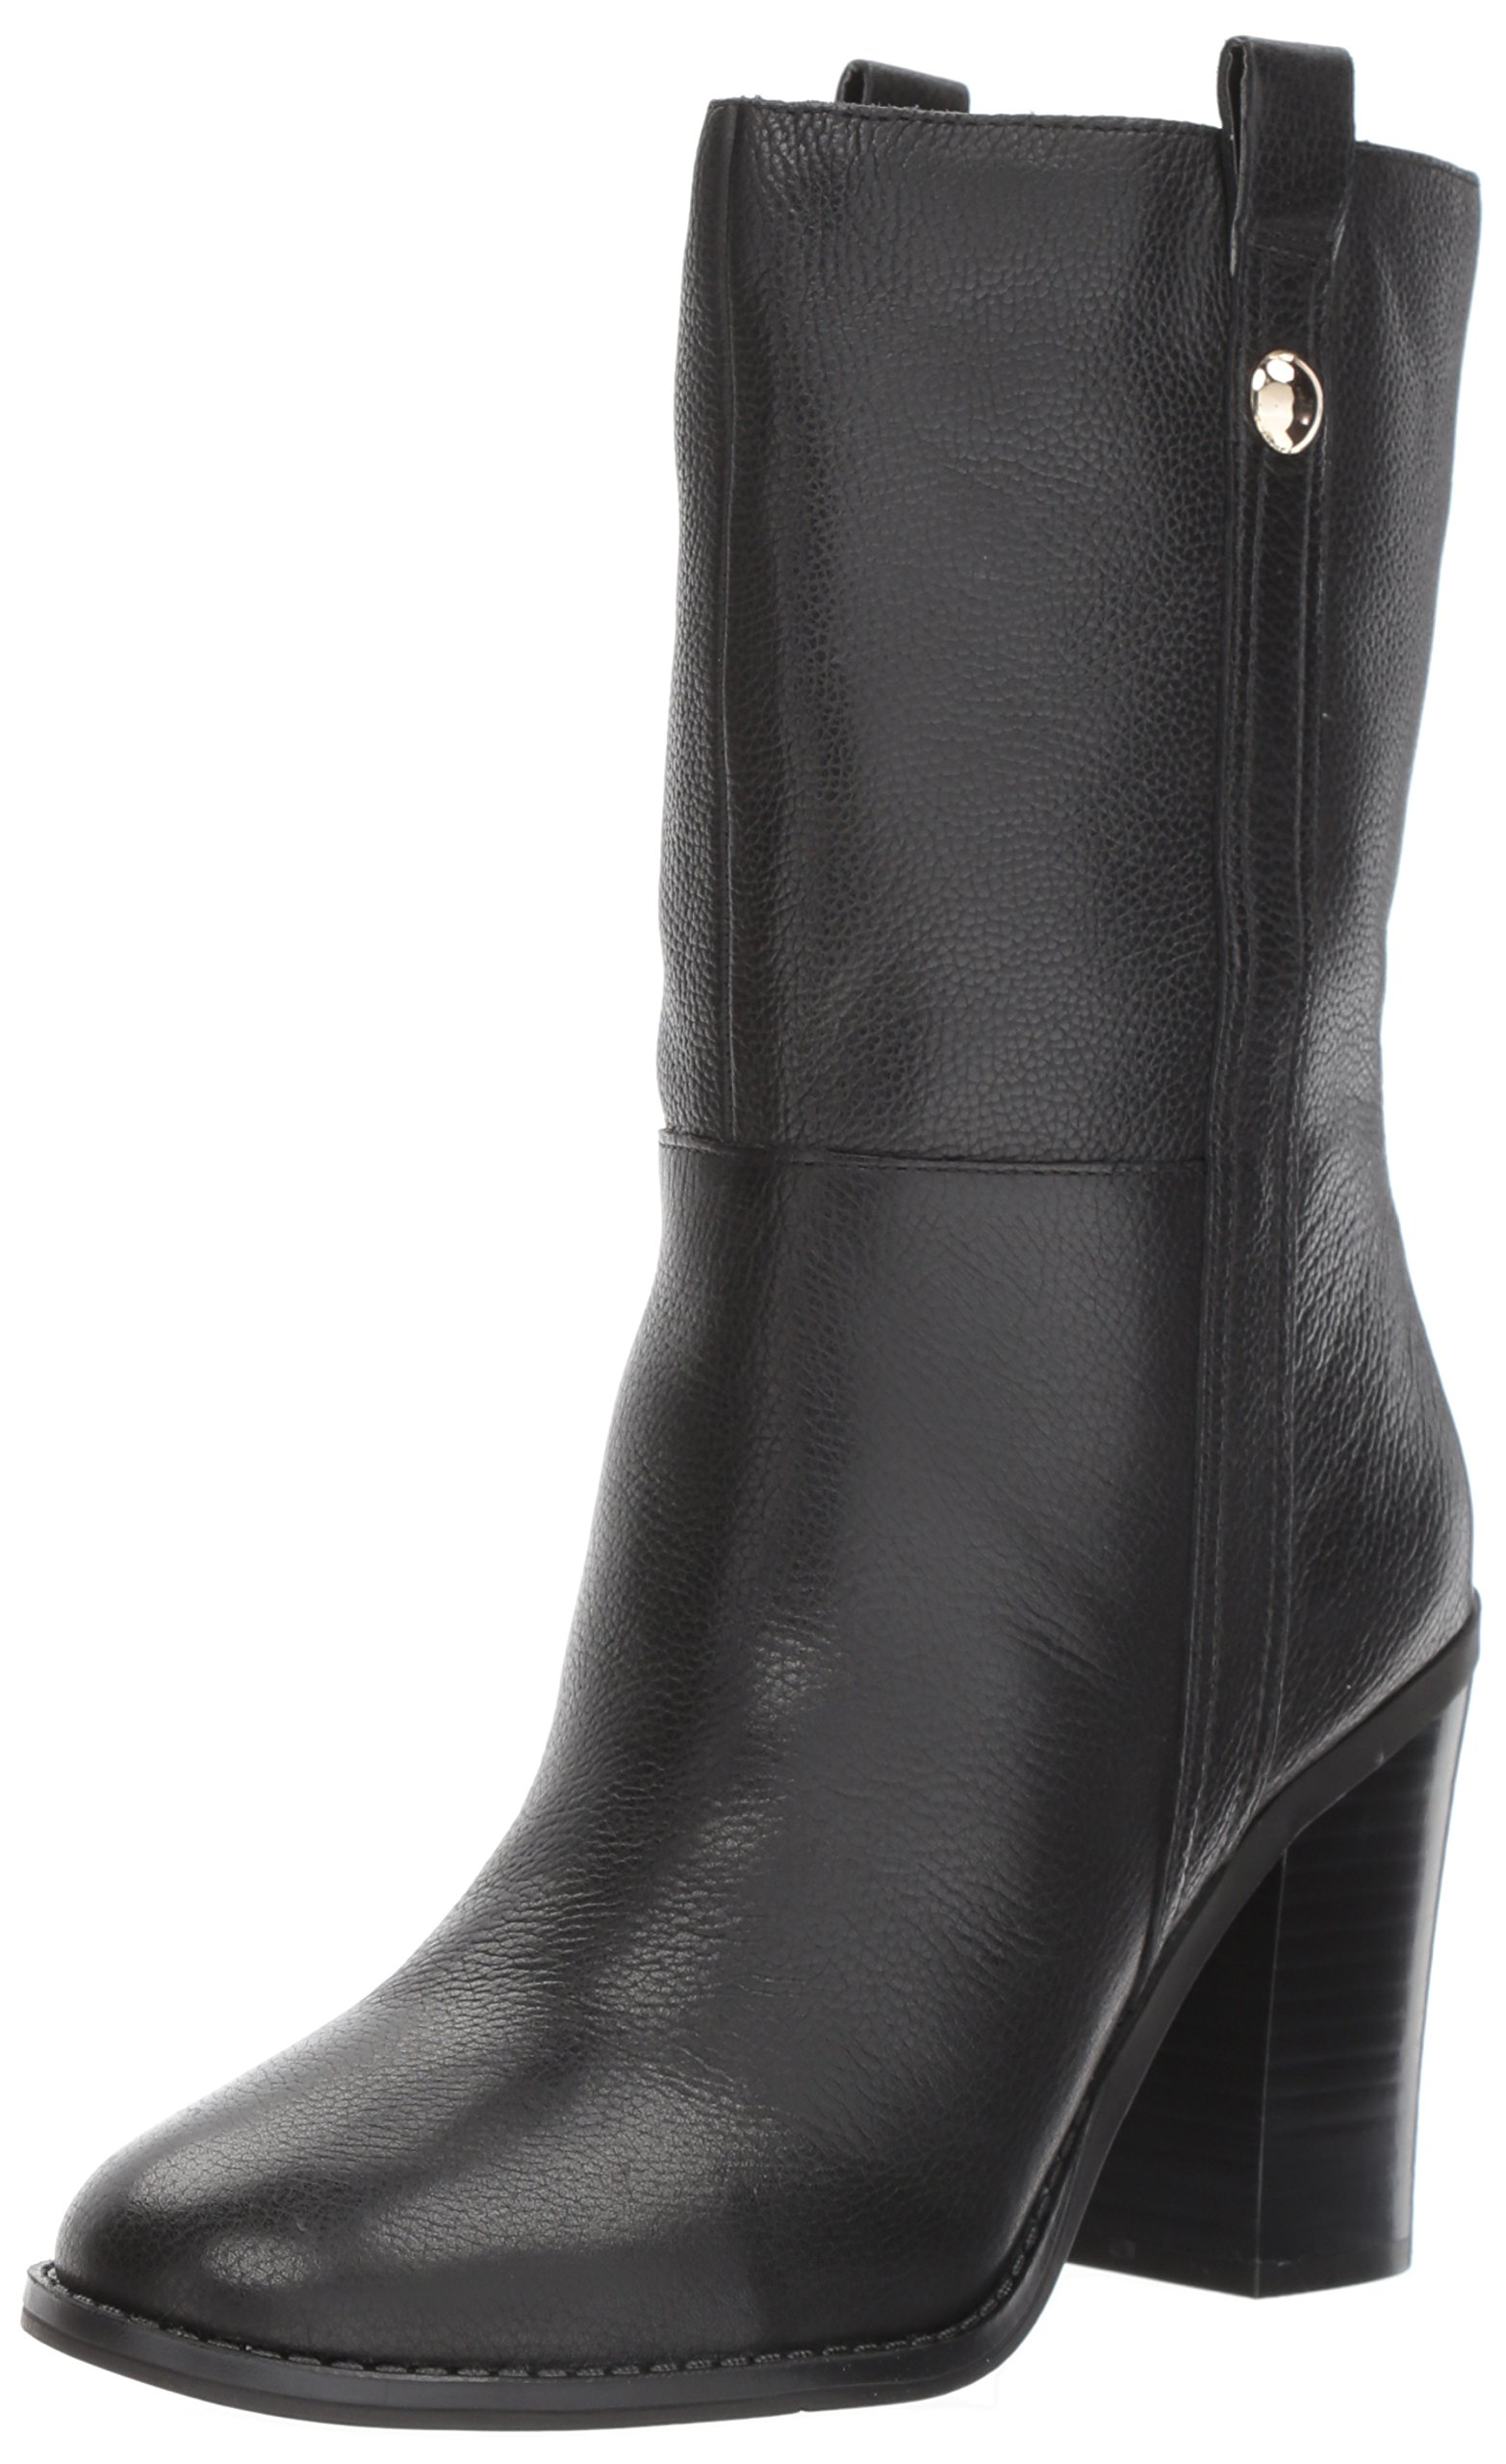 Nine West Women's Howl Leather Mid Calf Boot, Black Leather, 9 Medium US